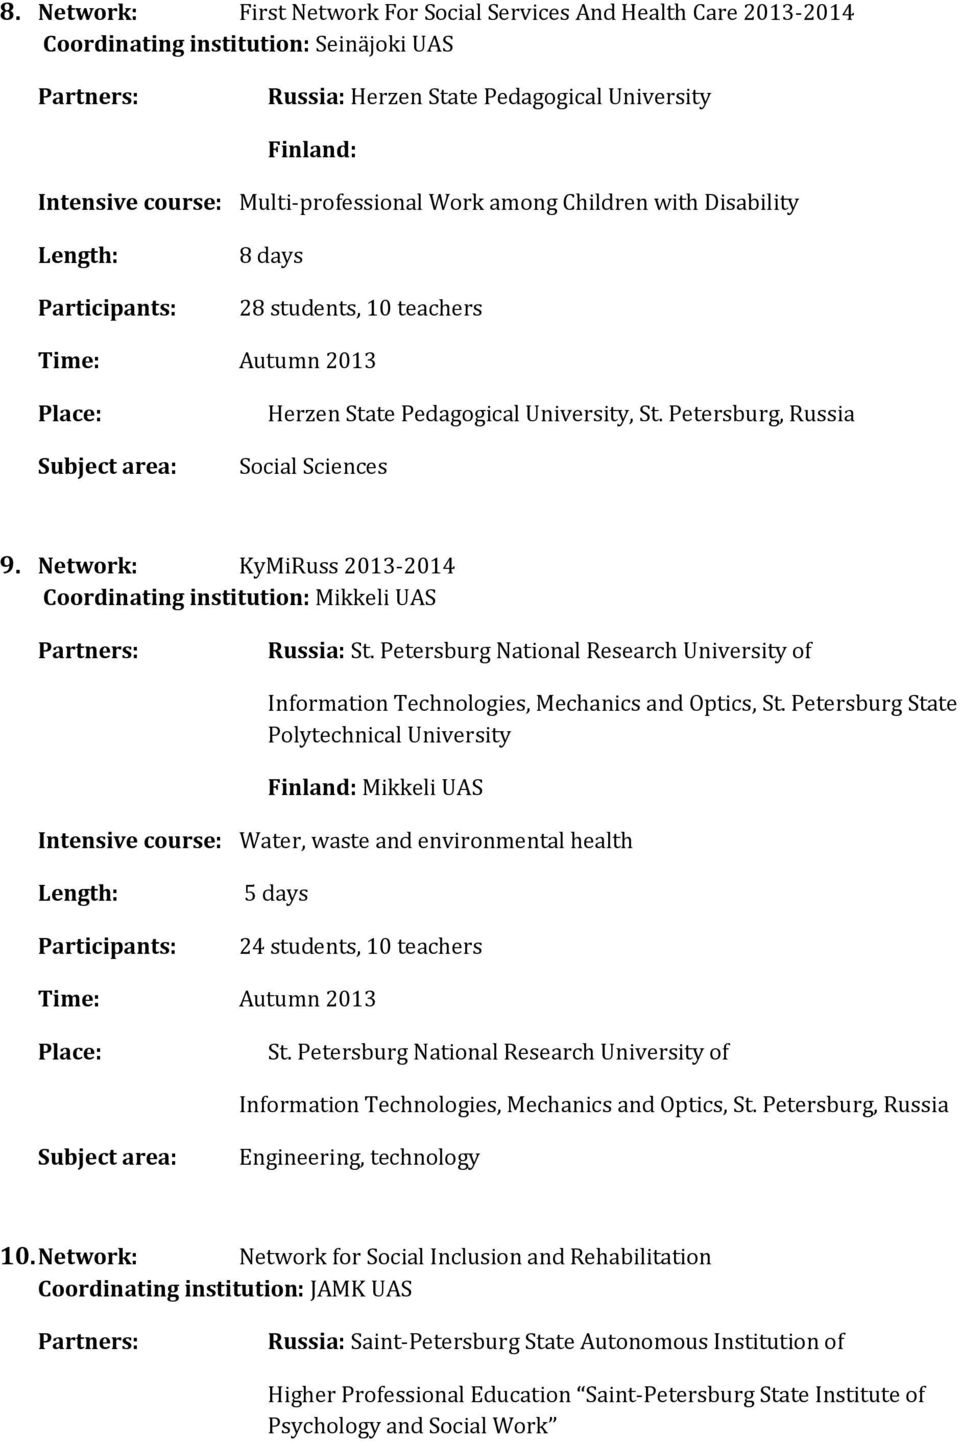 Network: KyMiRuss 2013-2014 Coordinating institution: Mikkeli UAS Russia: St. Petersburg National Research University of Information Technologies, Mechanics and Optics, St.